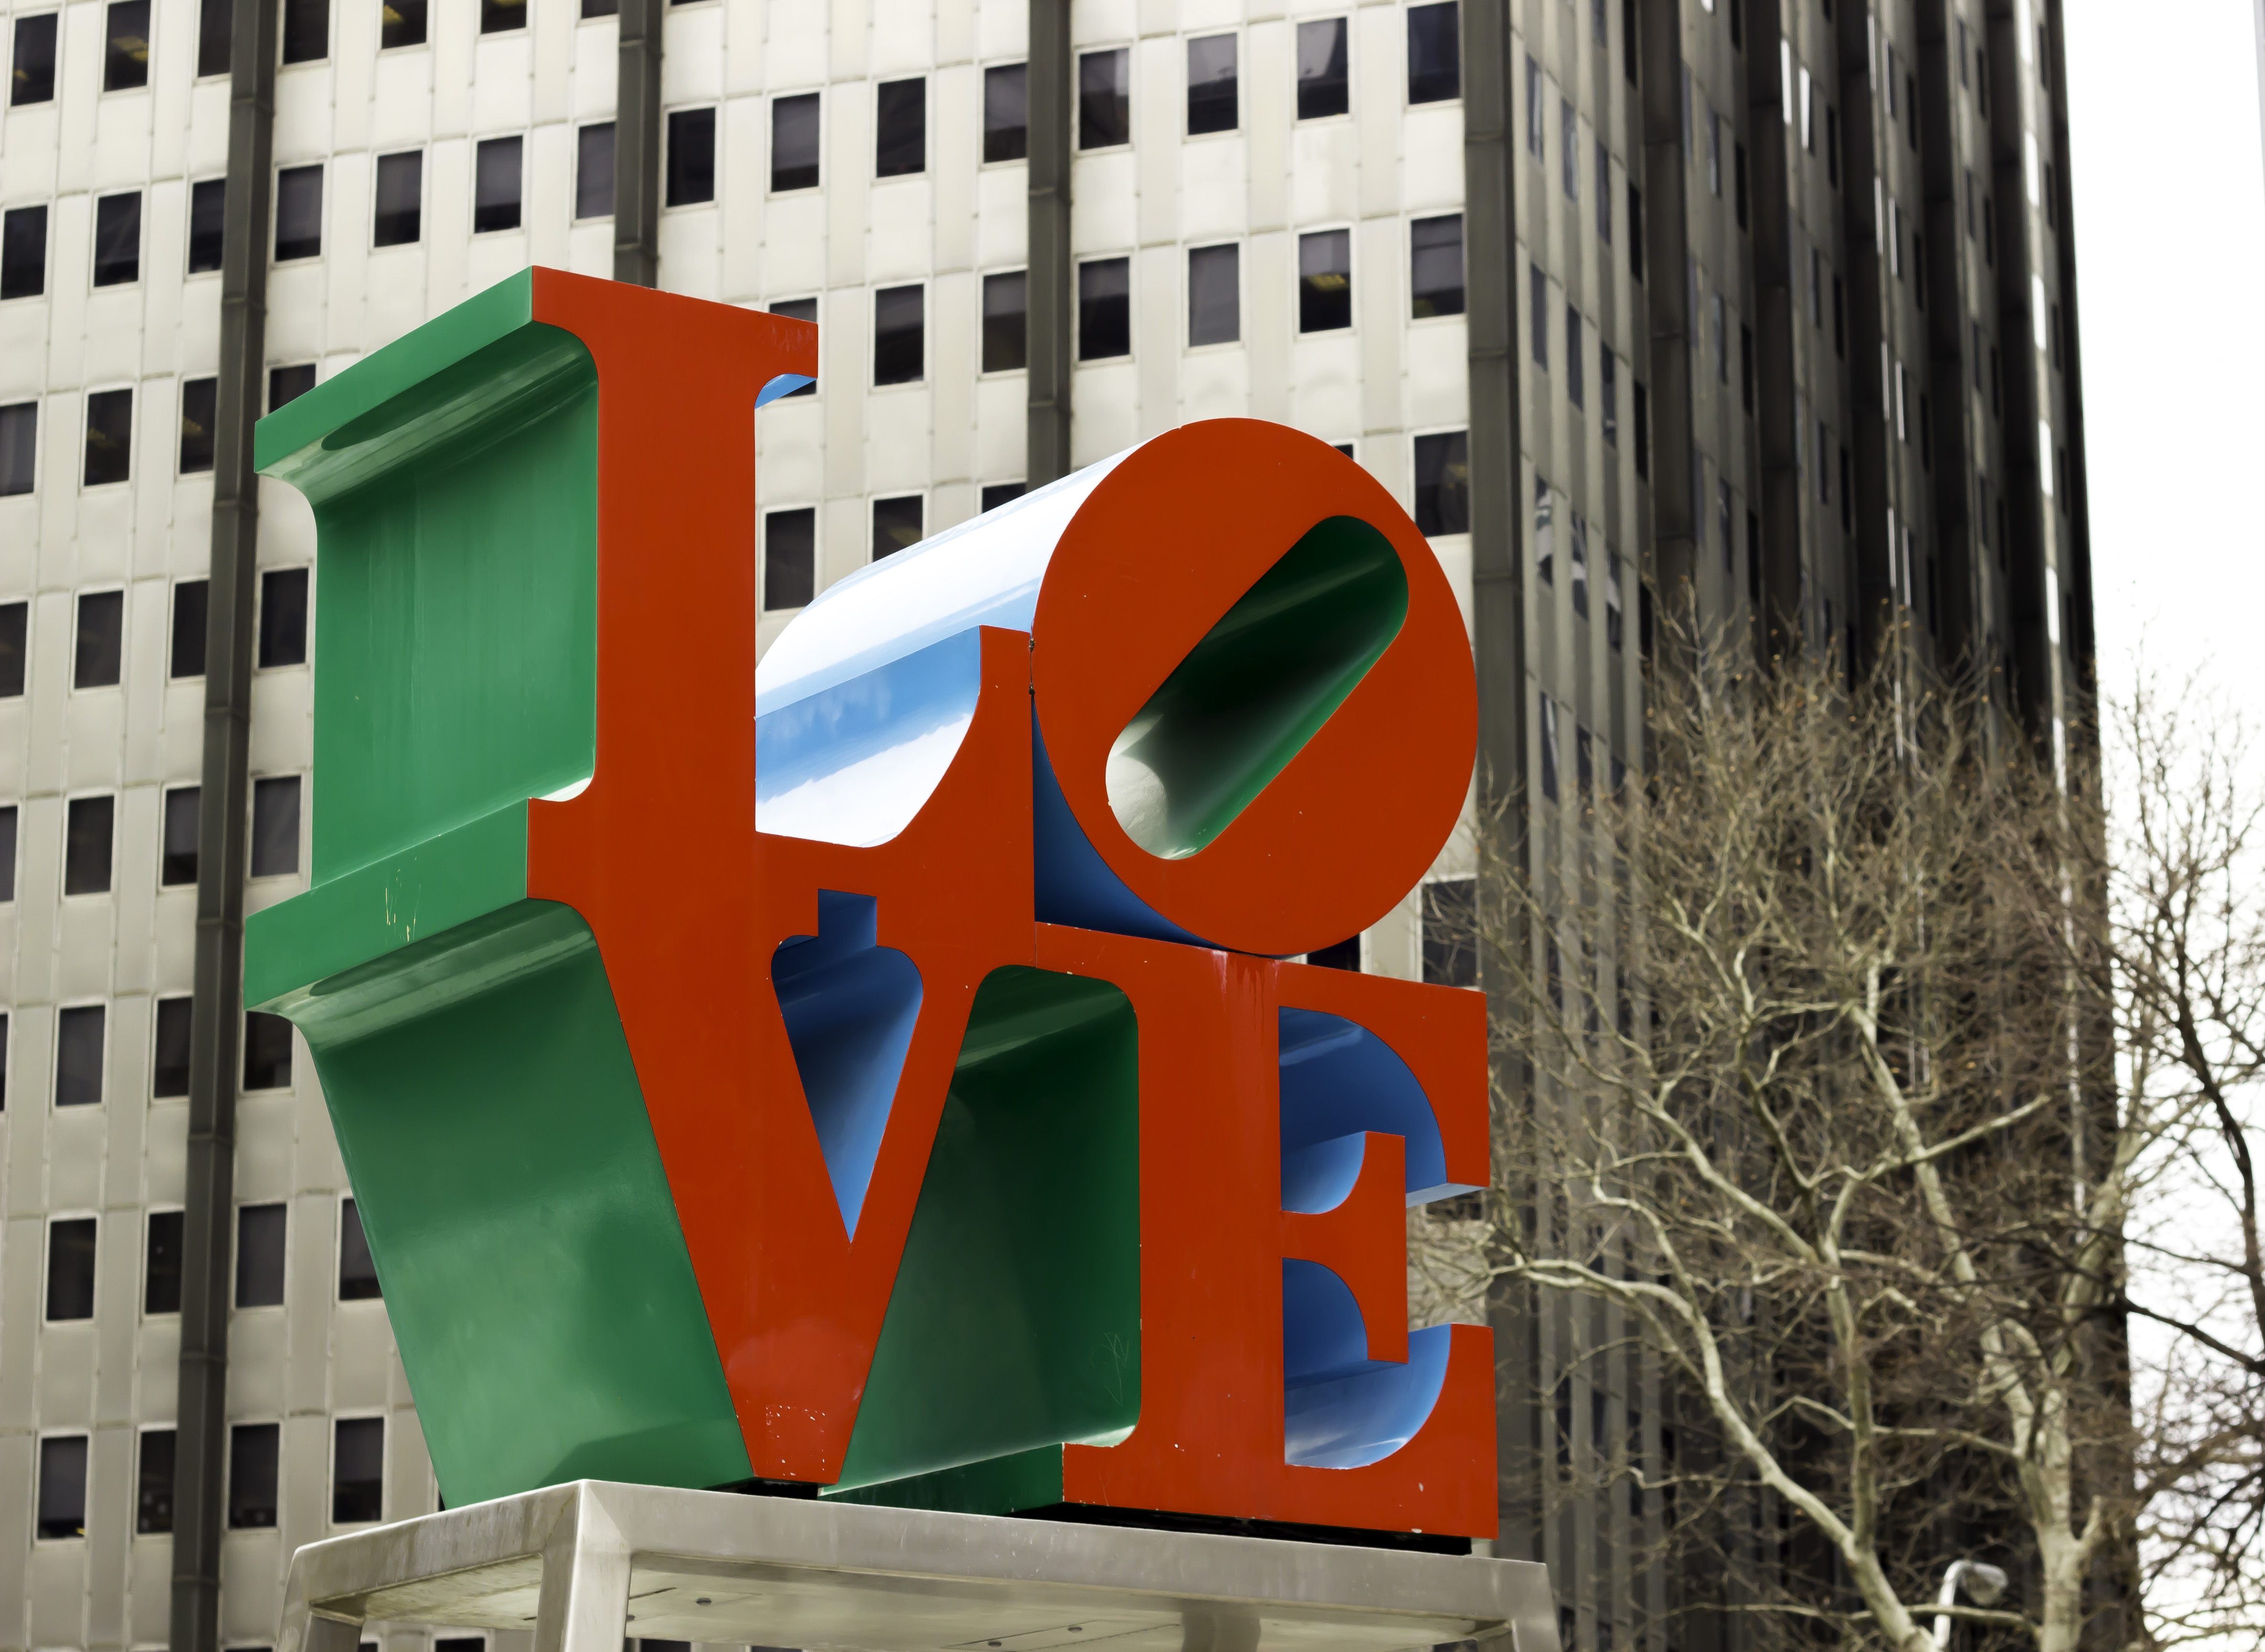 Love sign in Love Park Philadelphia, PA